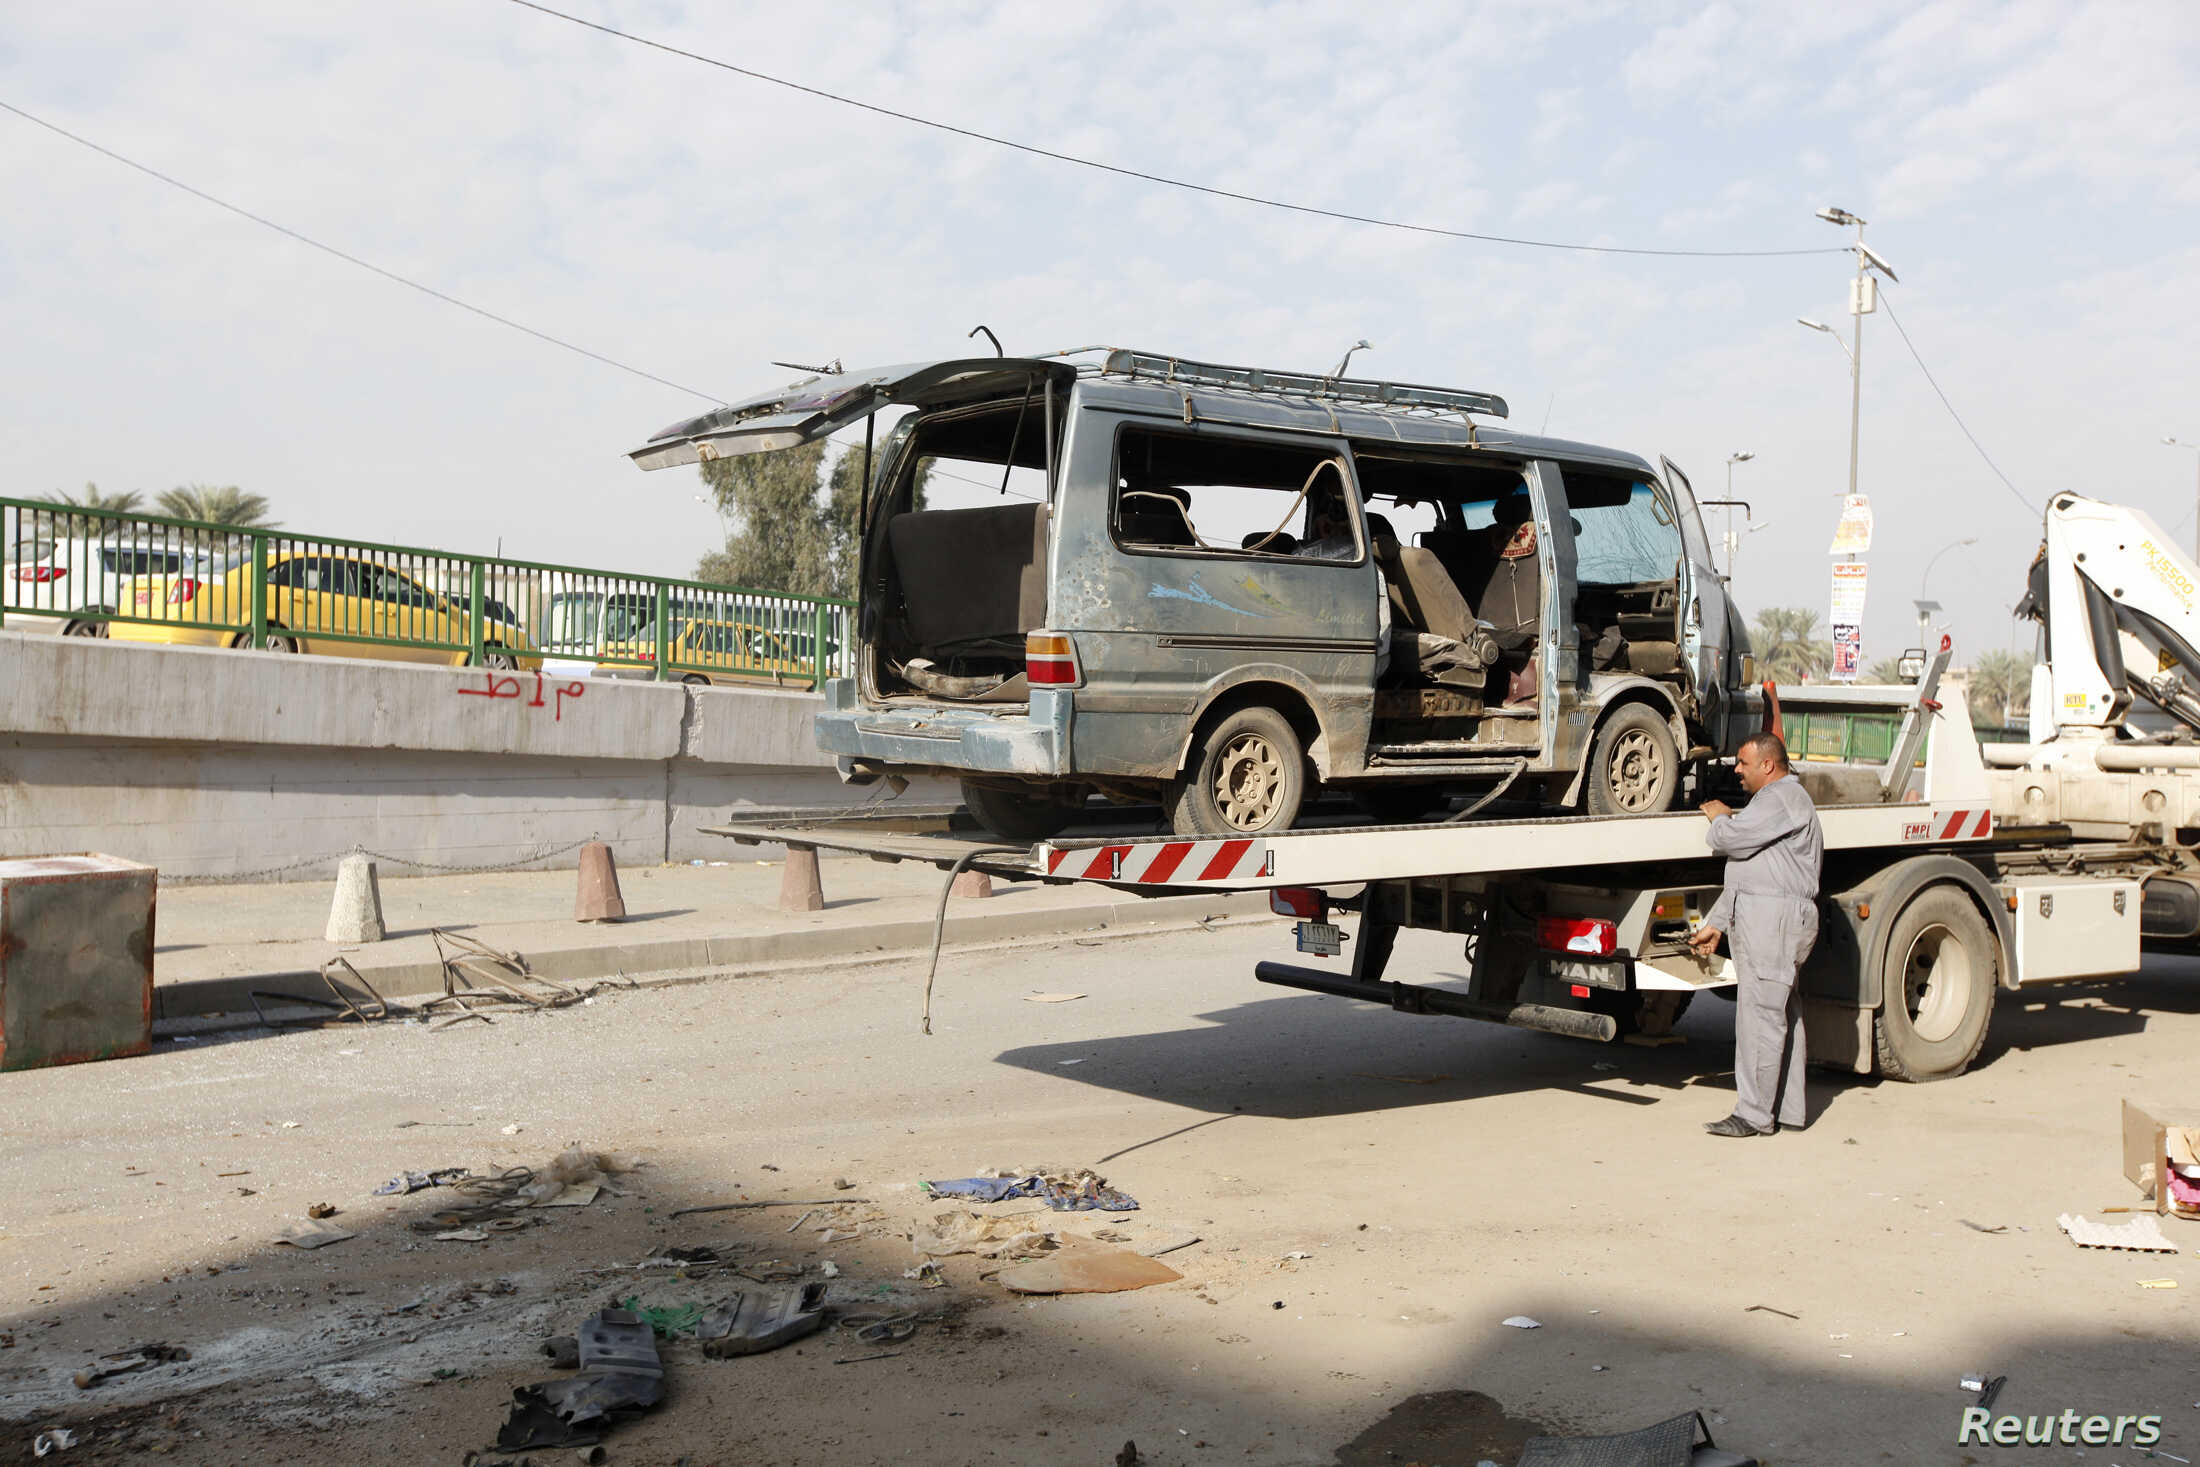 A worker prepares to remove the wreckage of a vehicle at one of the sites of car bomb attacks in Baghdad, Iraq, Dec. 8, 2013.